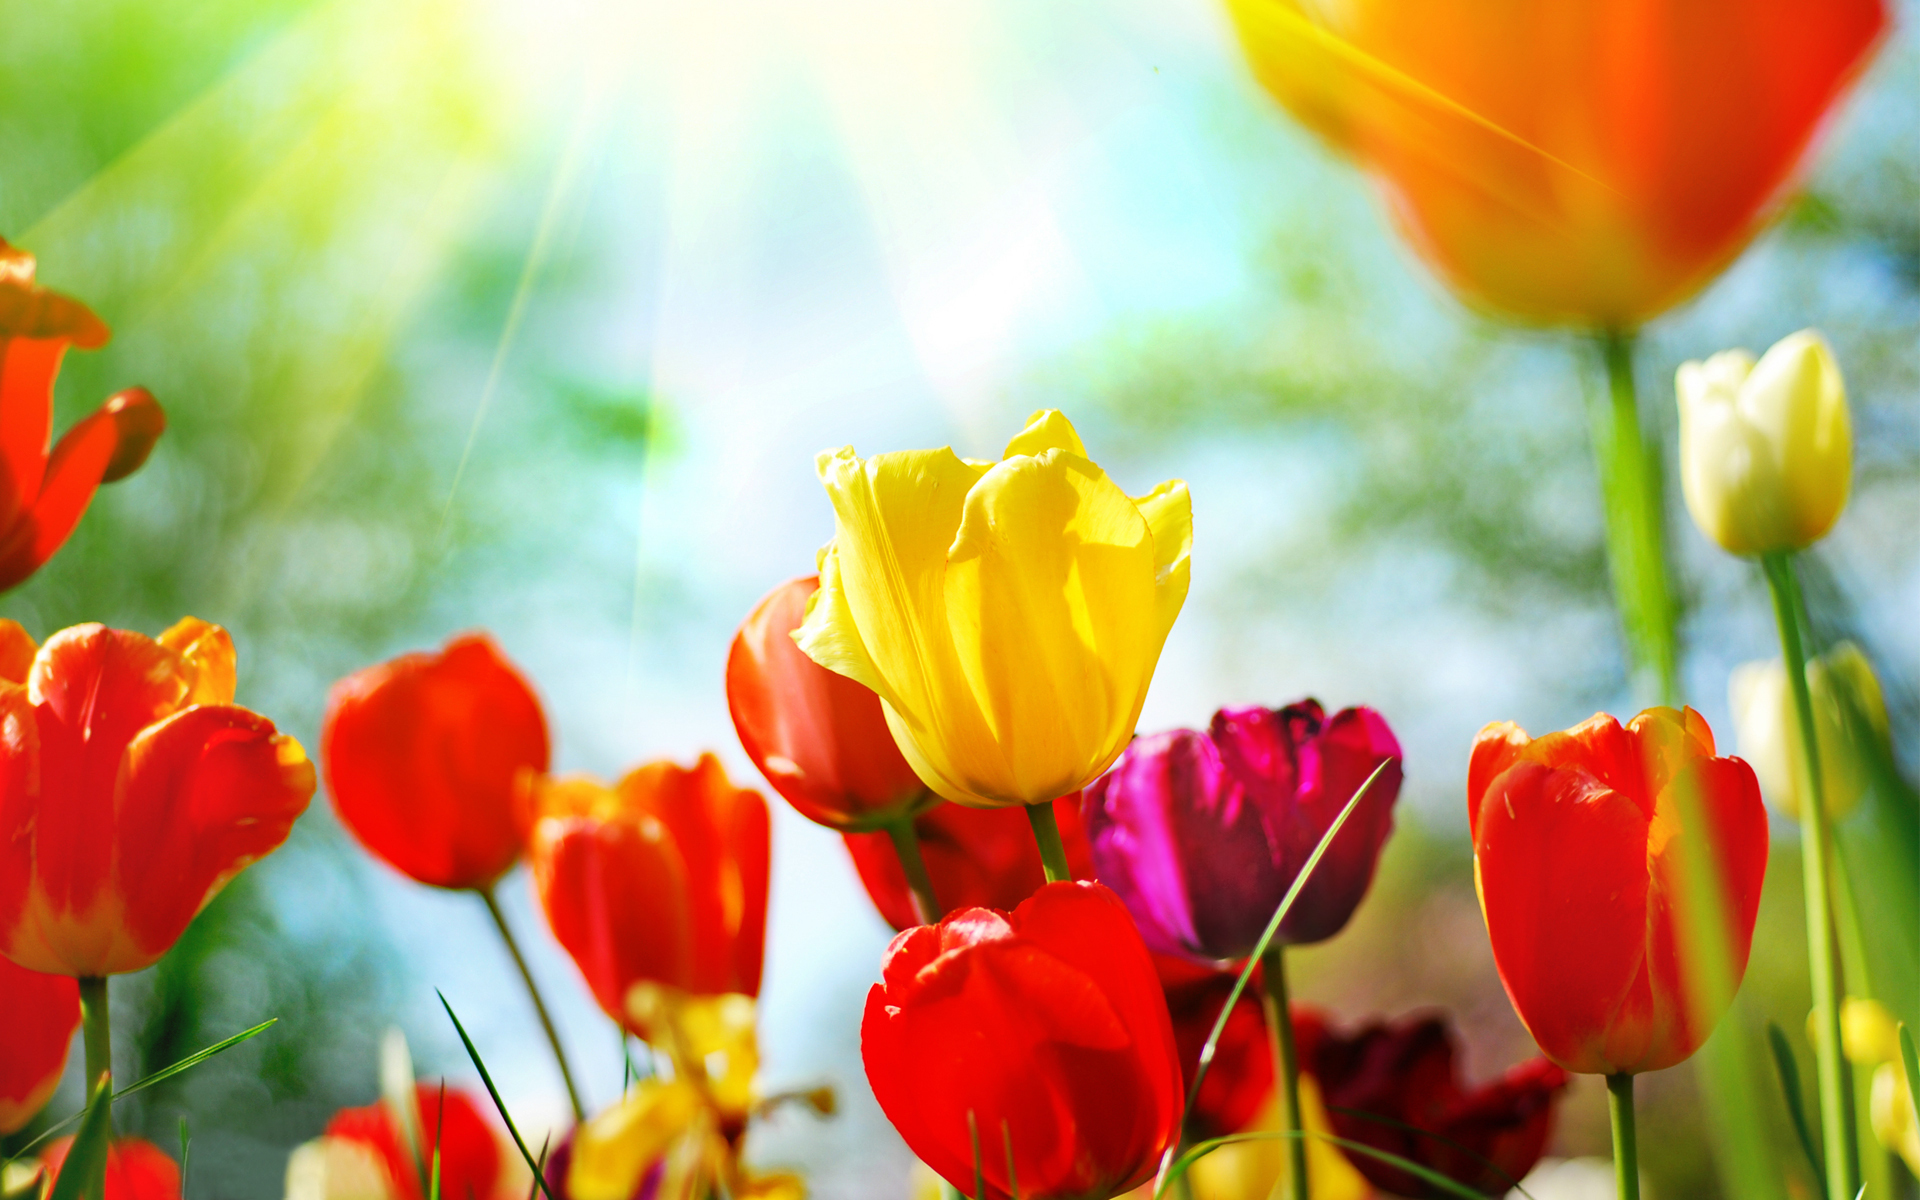 Wallpaper spring flowers desktop background free download pic download mightylinksfo